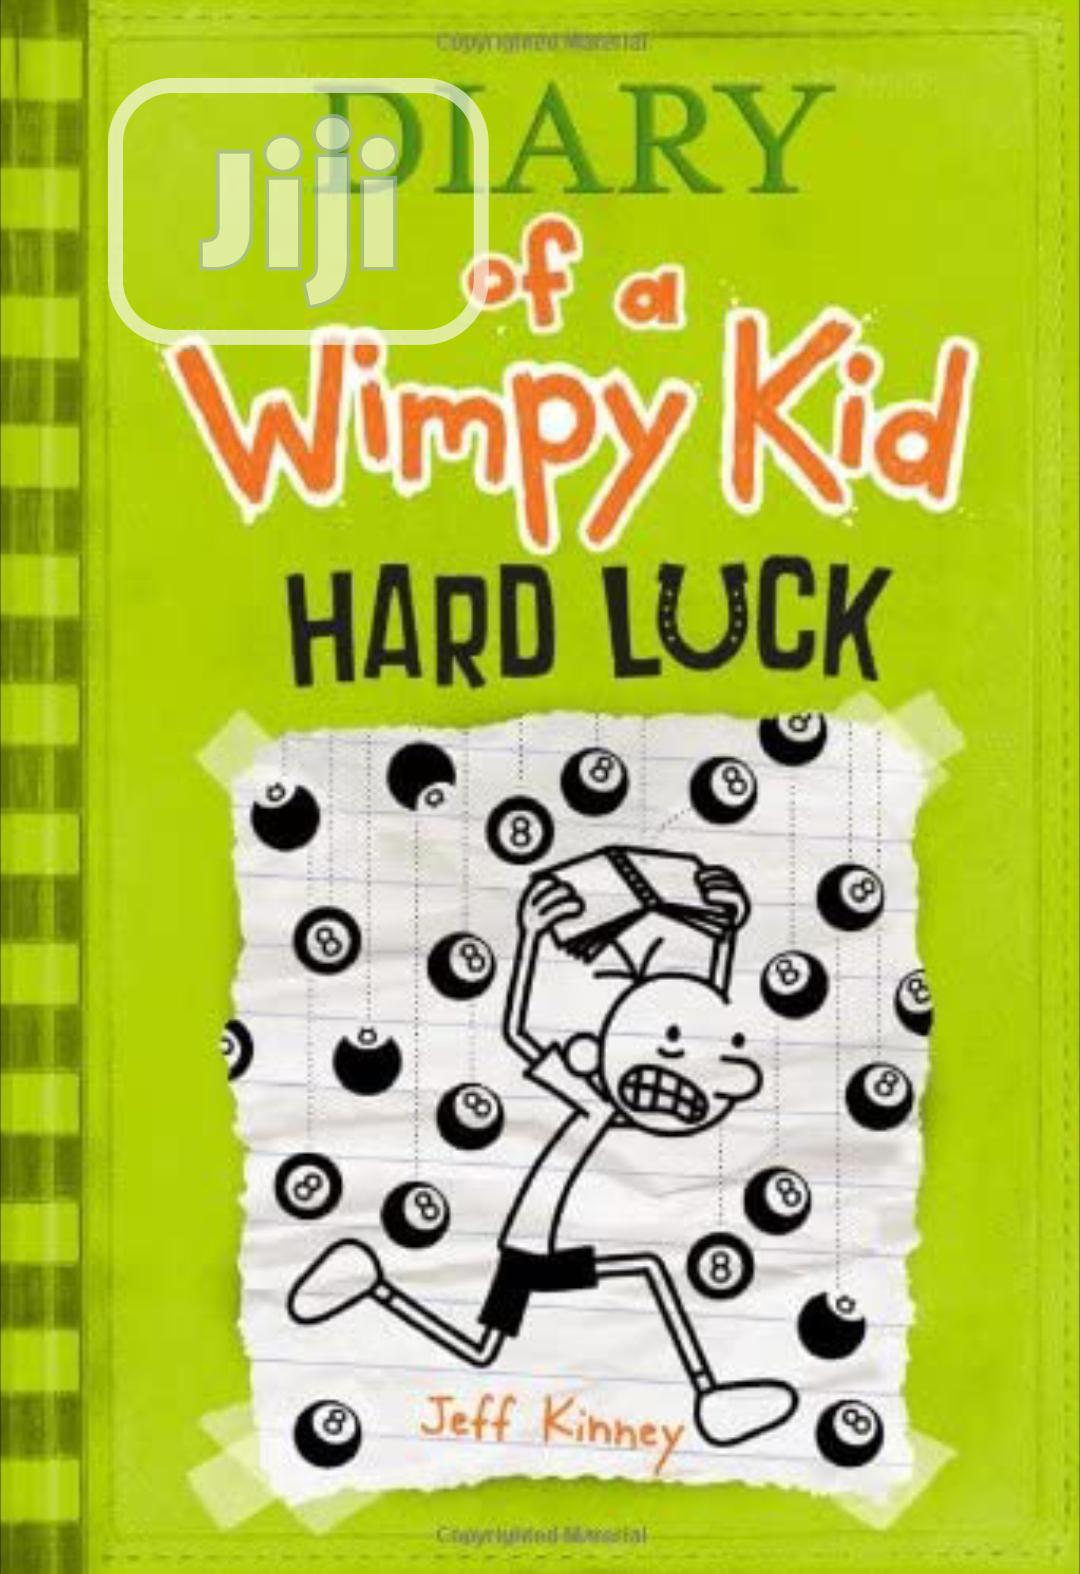 Archive: Diary of a Wimpy Kid Book 8: Hard Luck by Jeff Kinney